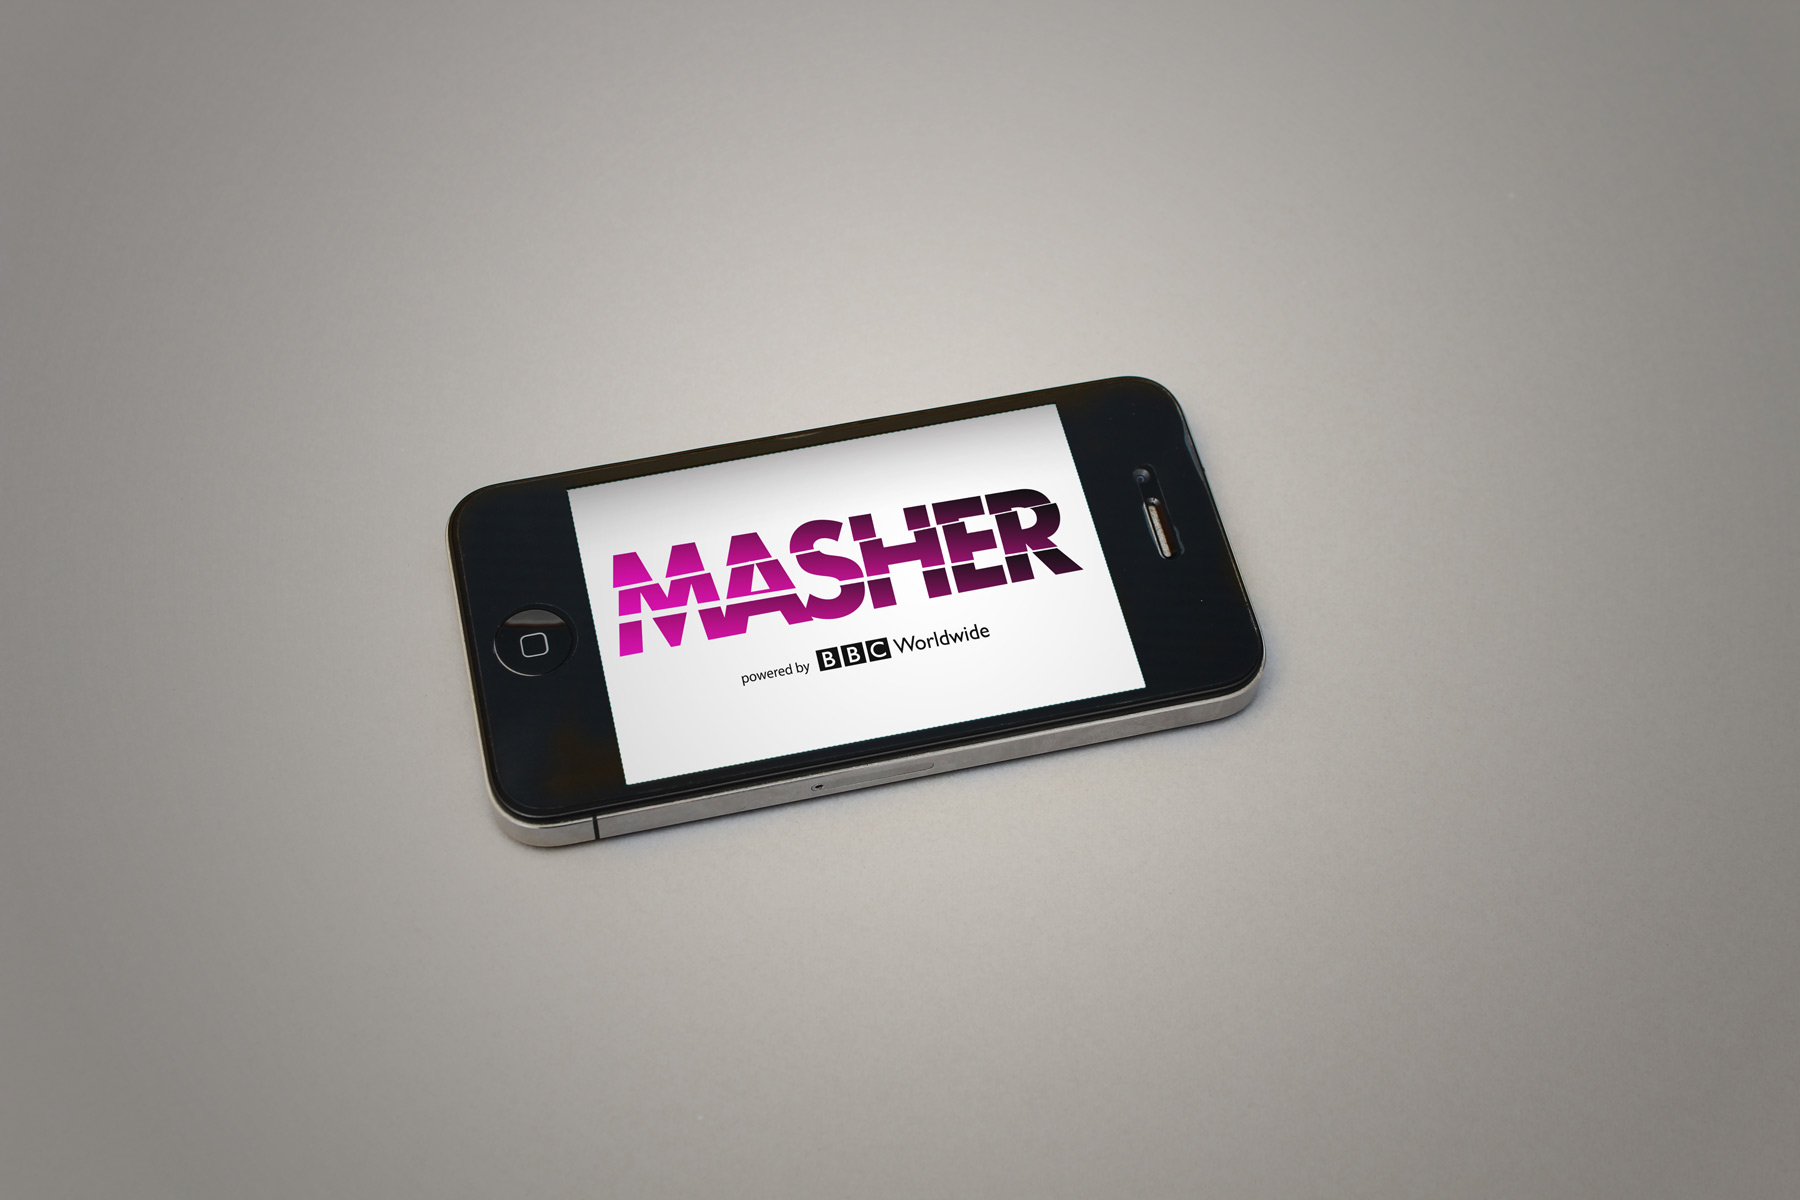 The Masher identity is inspired by the notion of dicing and slicing content - Hence the wordmark has been cut into numerous parts, a graphic representation of this idea.